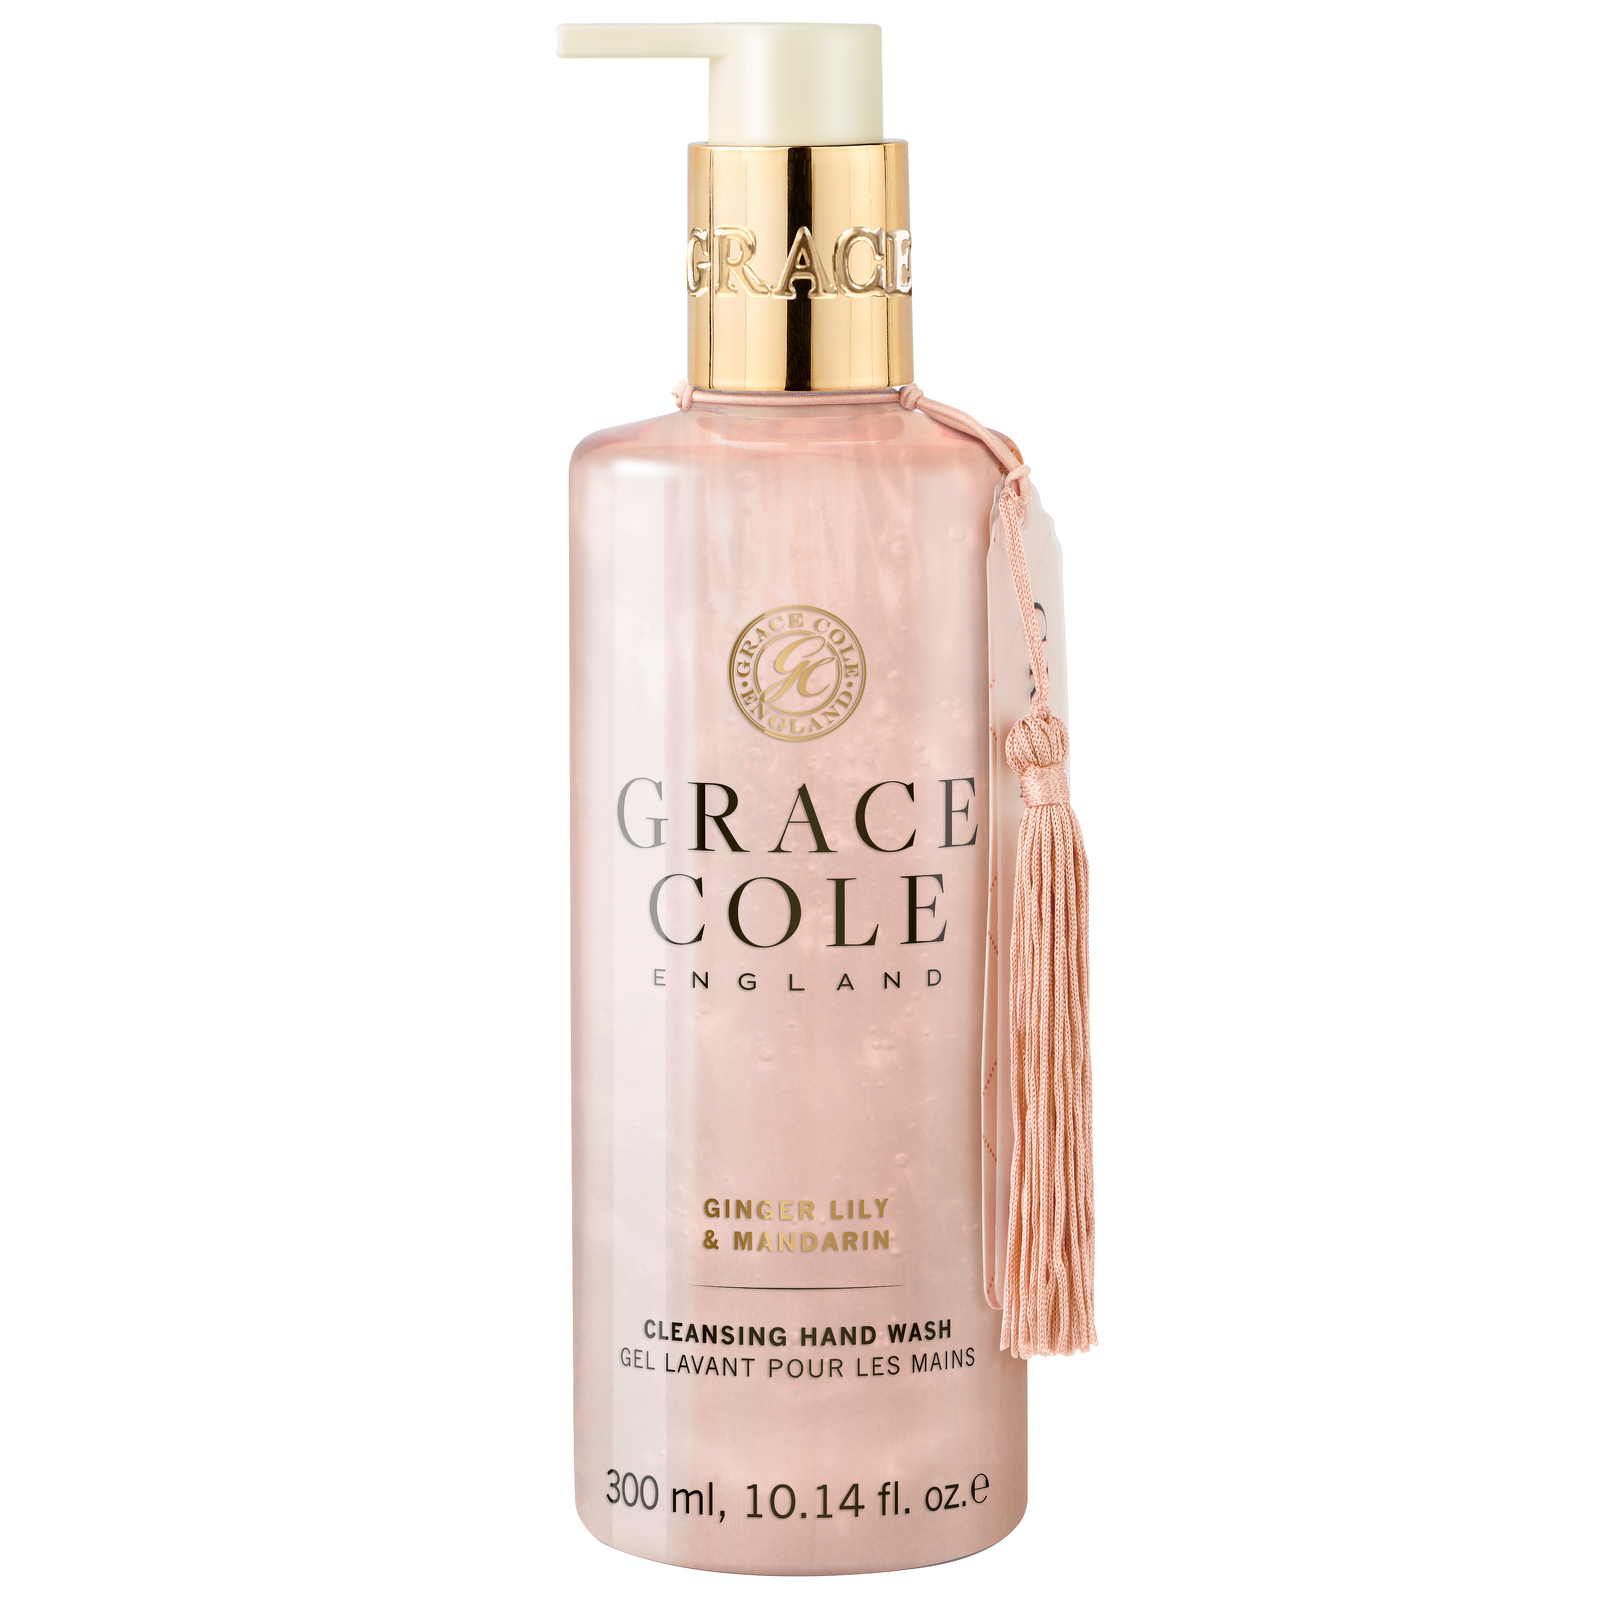 Grace Cole Ginger Lily & Mandarin Hand Wash 300ml